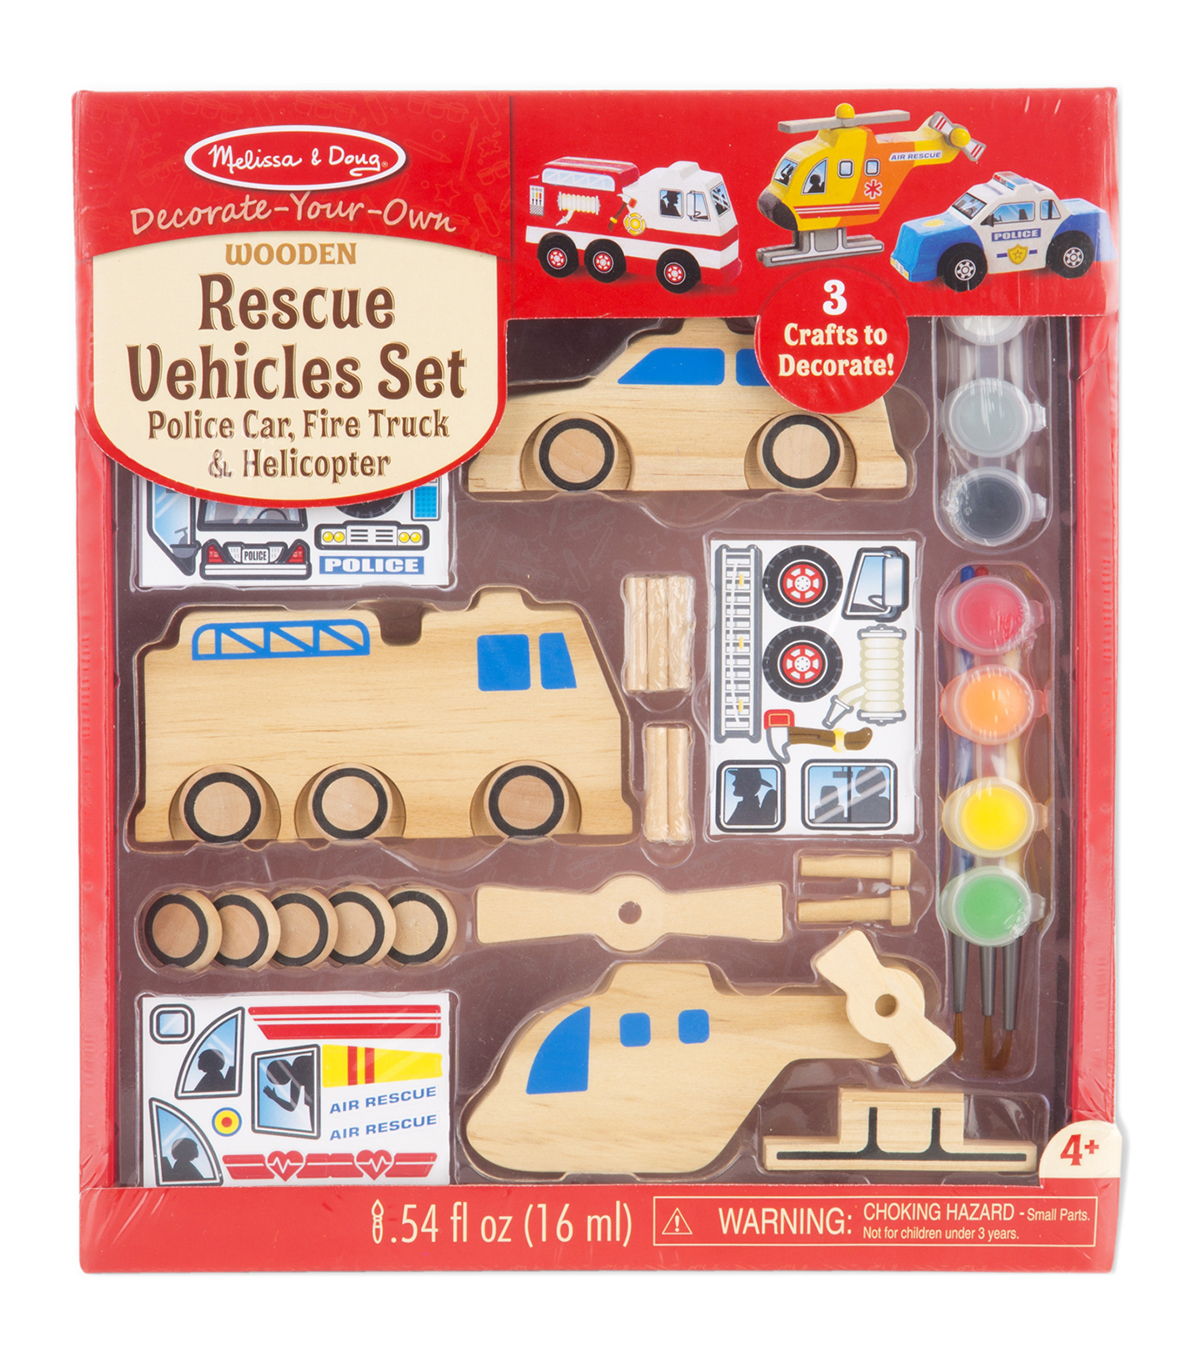 Melissa & Doug Decorate-Your-Own Wooden Kit-Rescue Vehicles